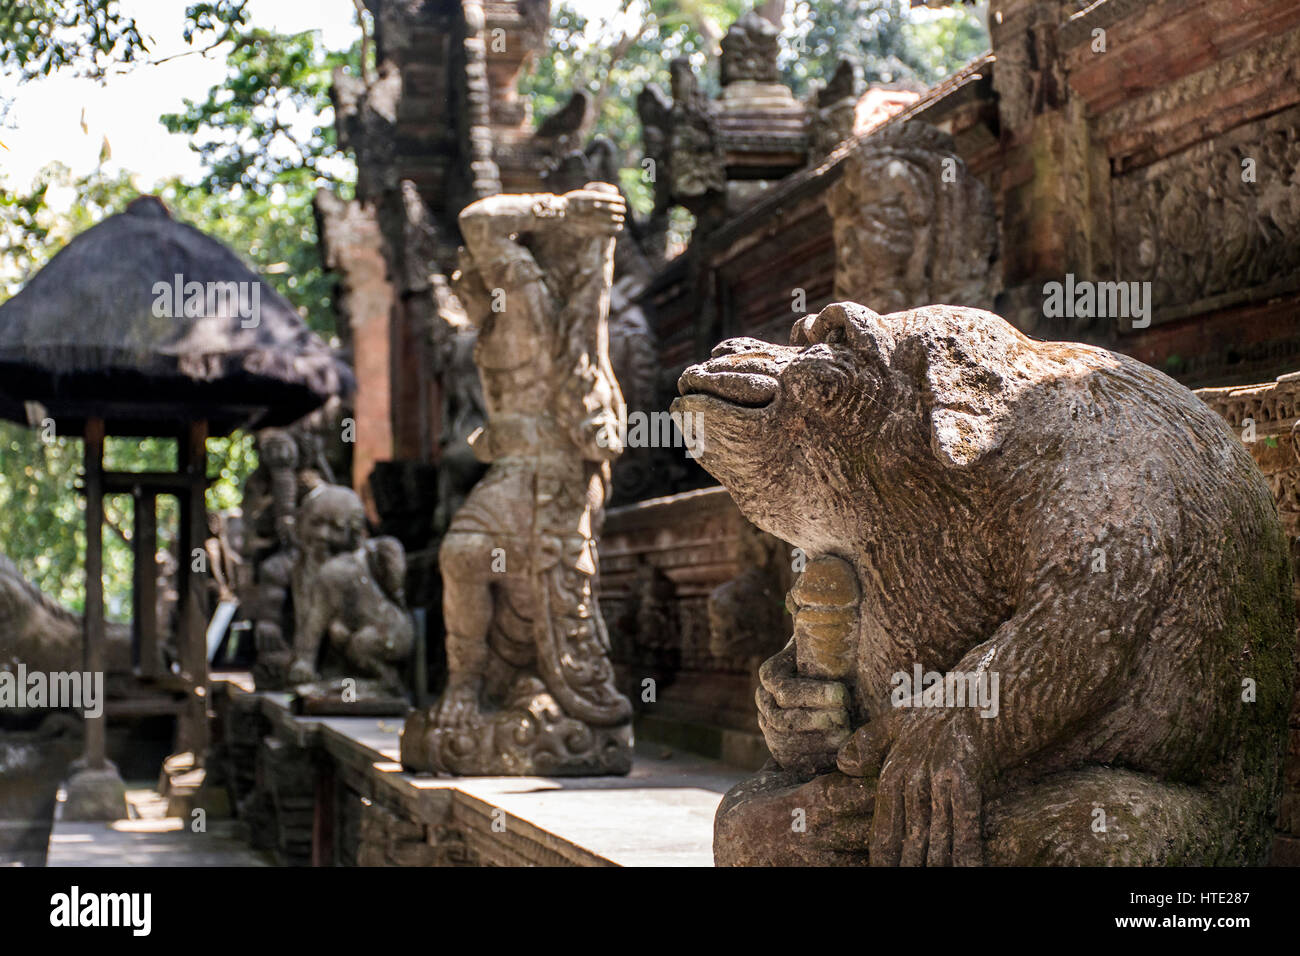 Bali Indonesia Ubud famous Monkey Forest Temple sculpture monkey genitals - Stock Image